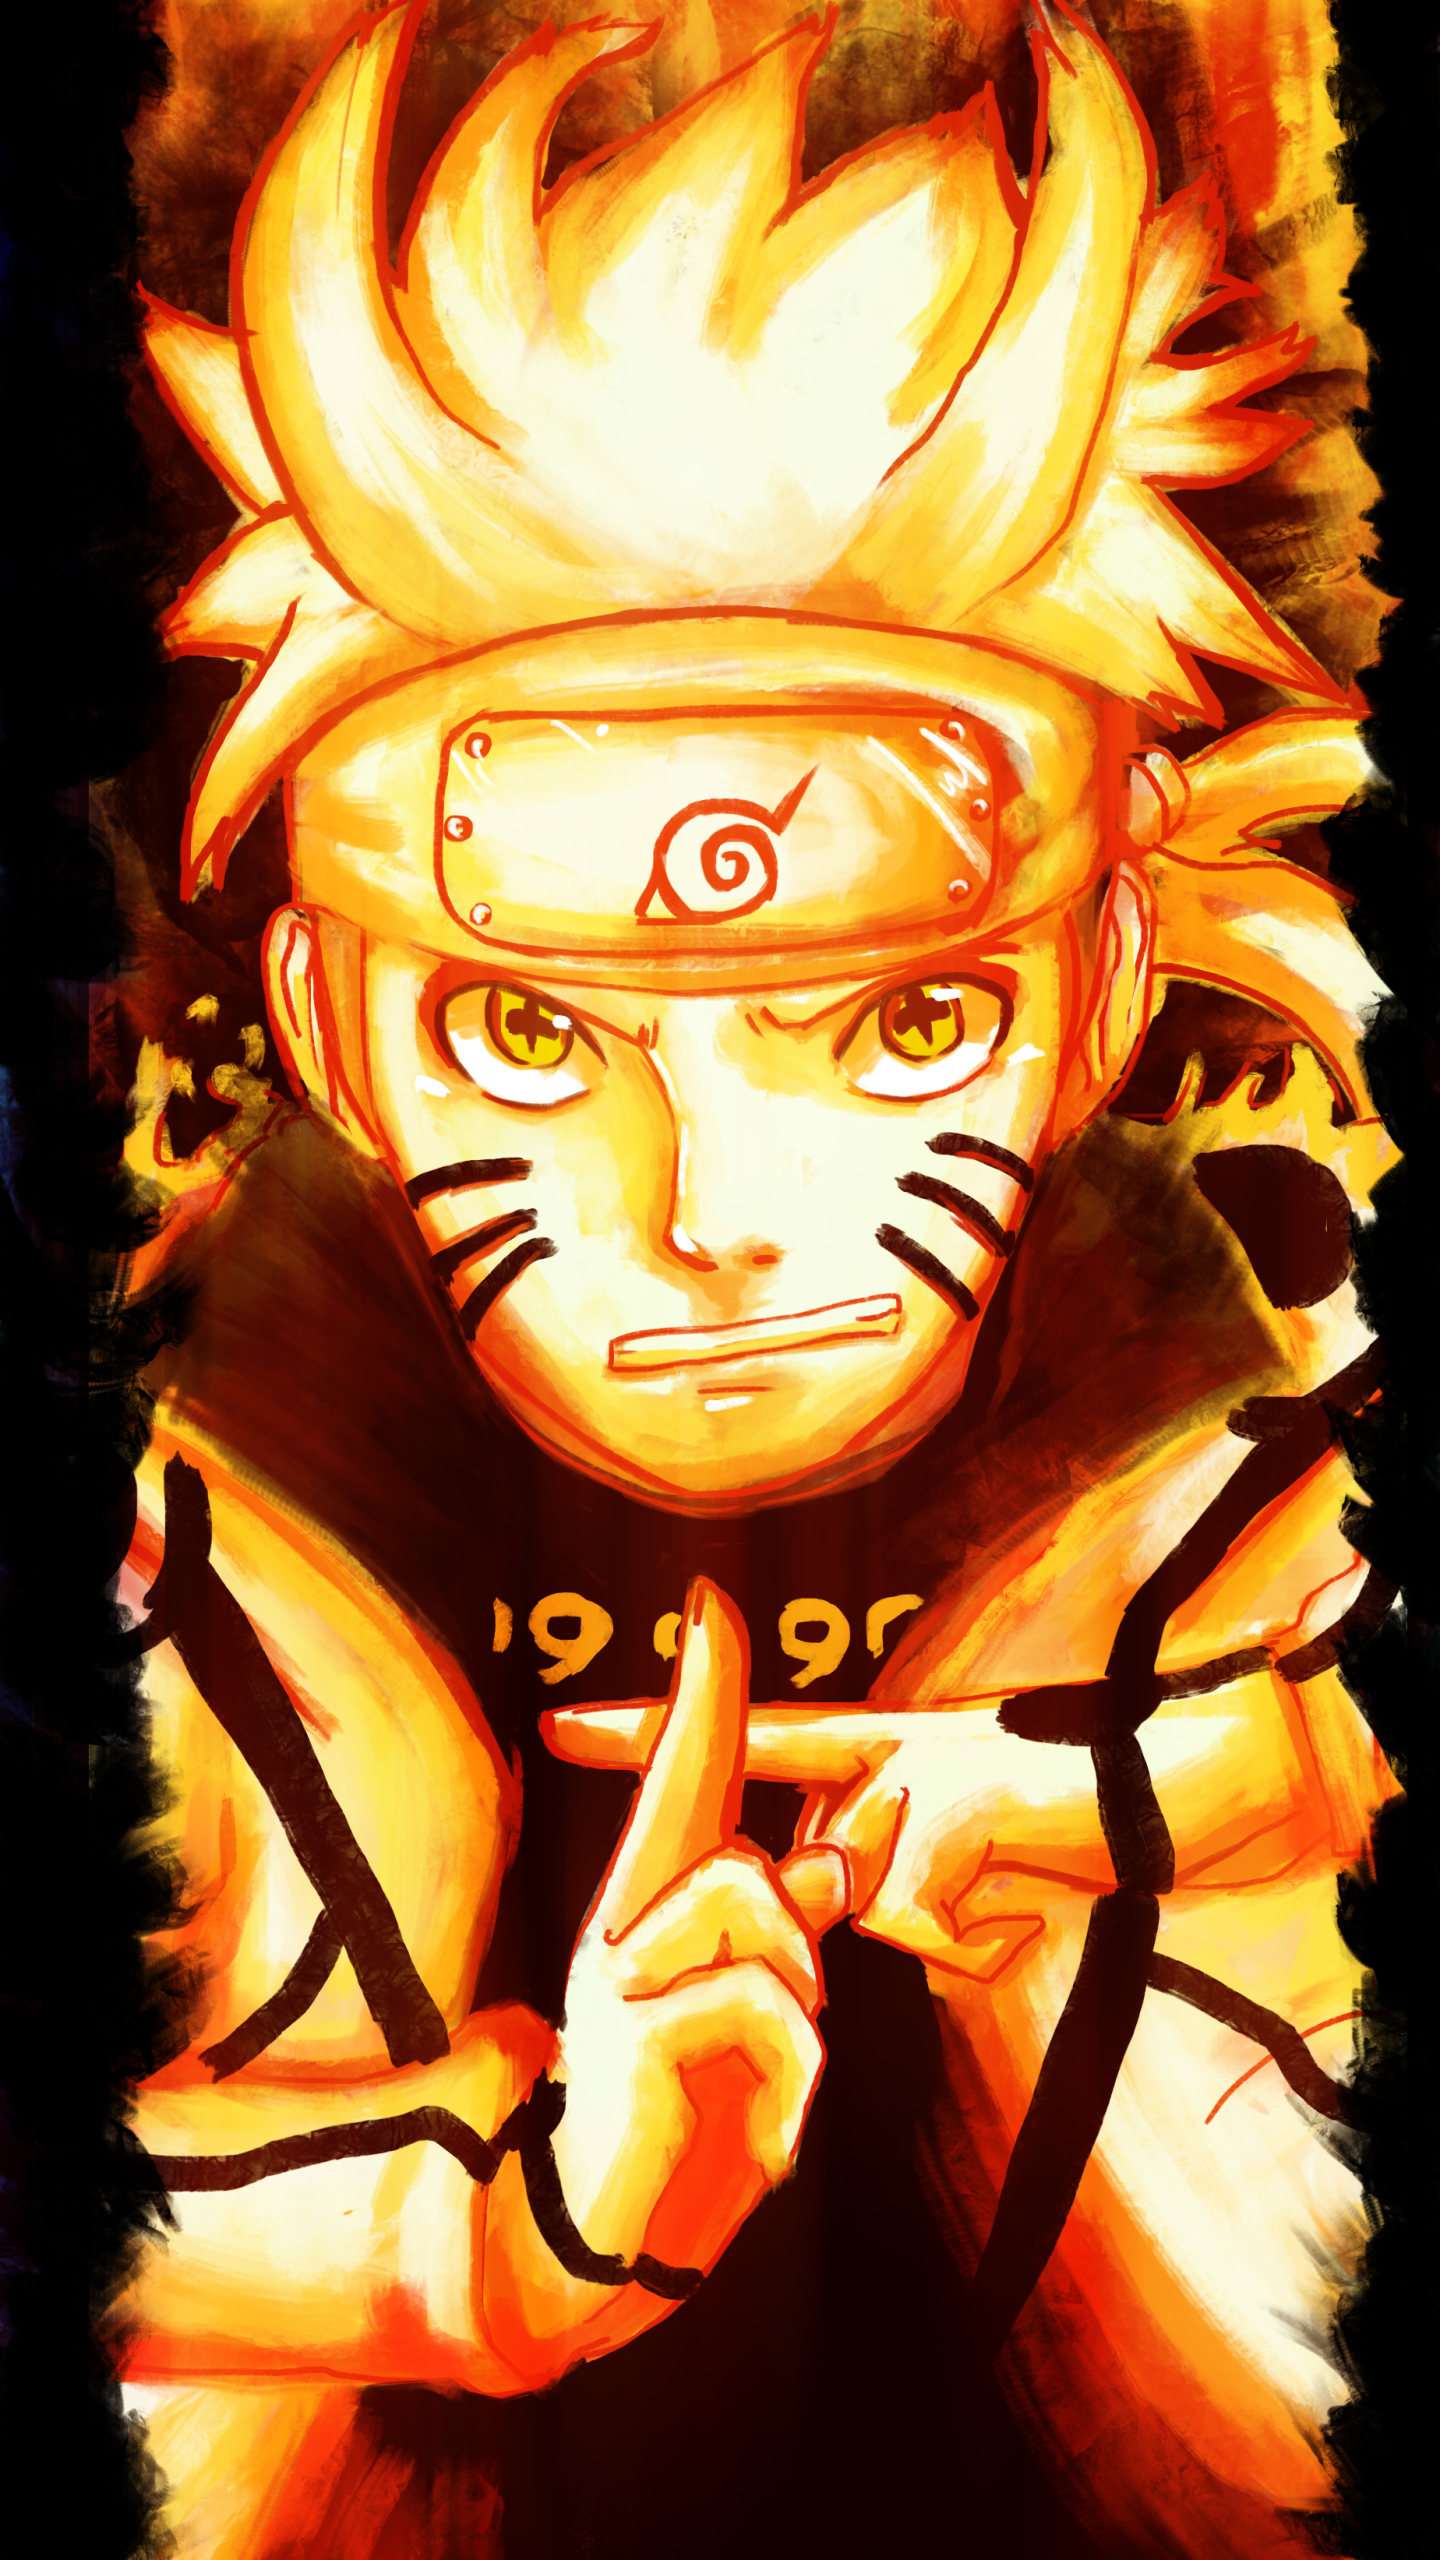 229 naruto apple/iphone 6 (750x1334) wallpapers - mobile abyss